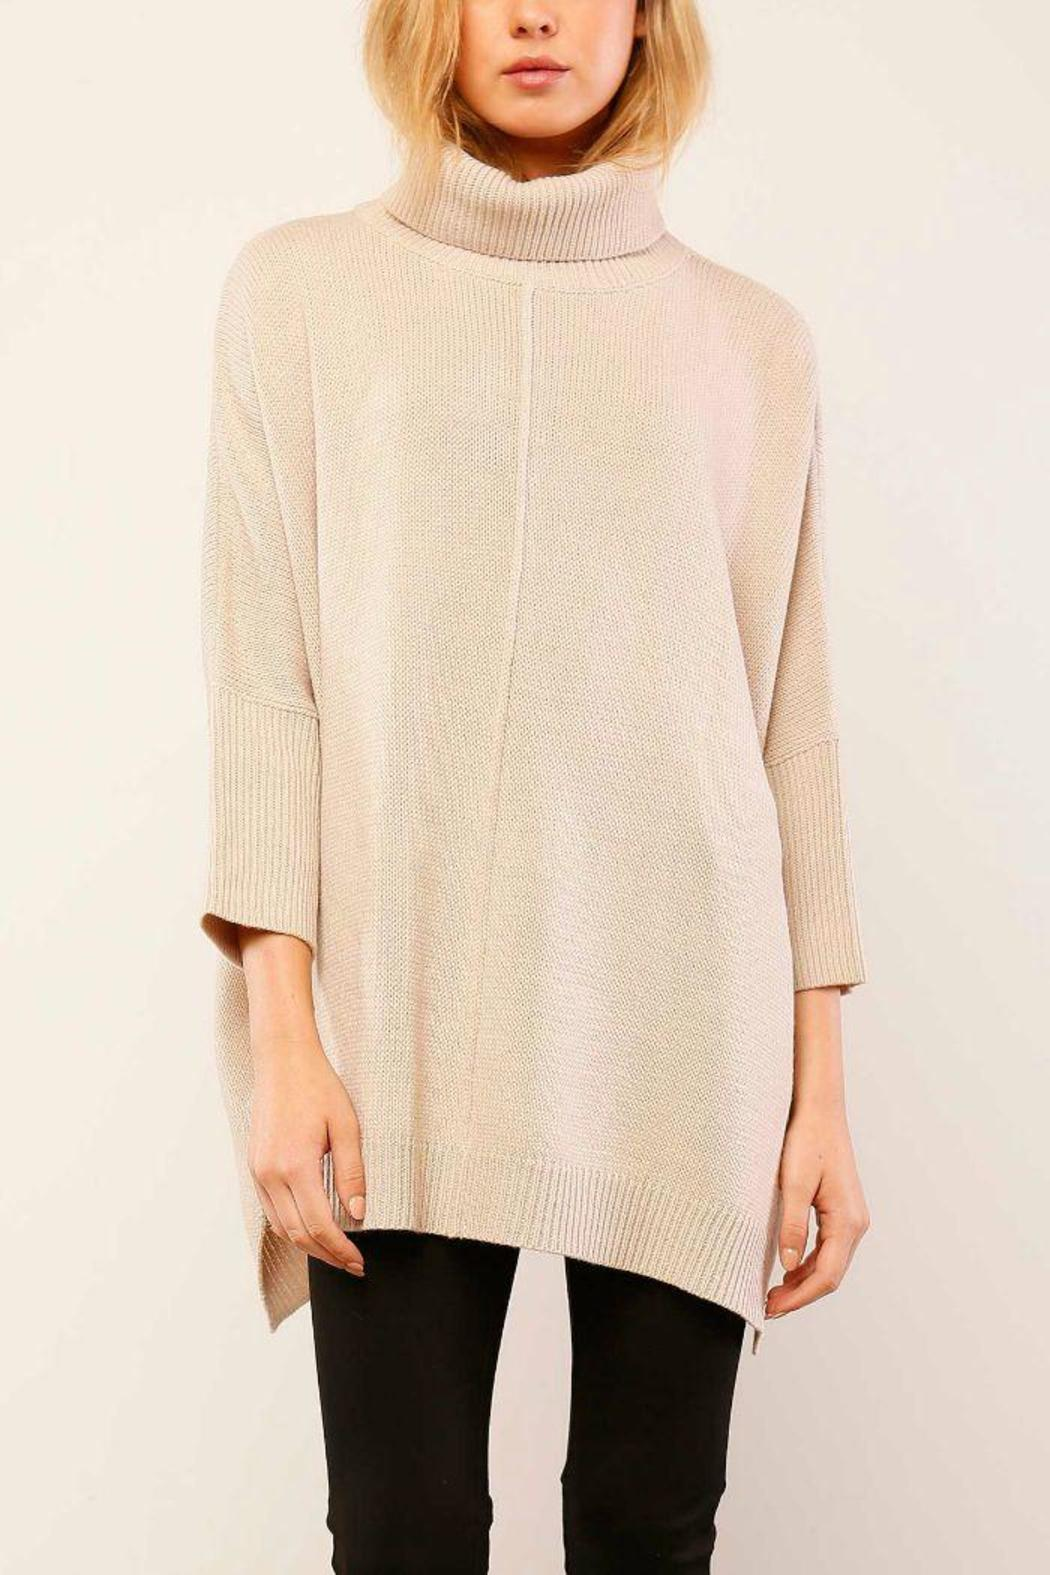 Lumiere Cream Turtleneck Sweater from Atlanta by GrayeStyle ...